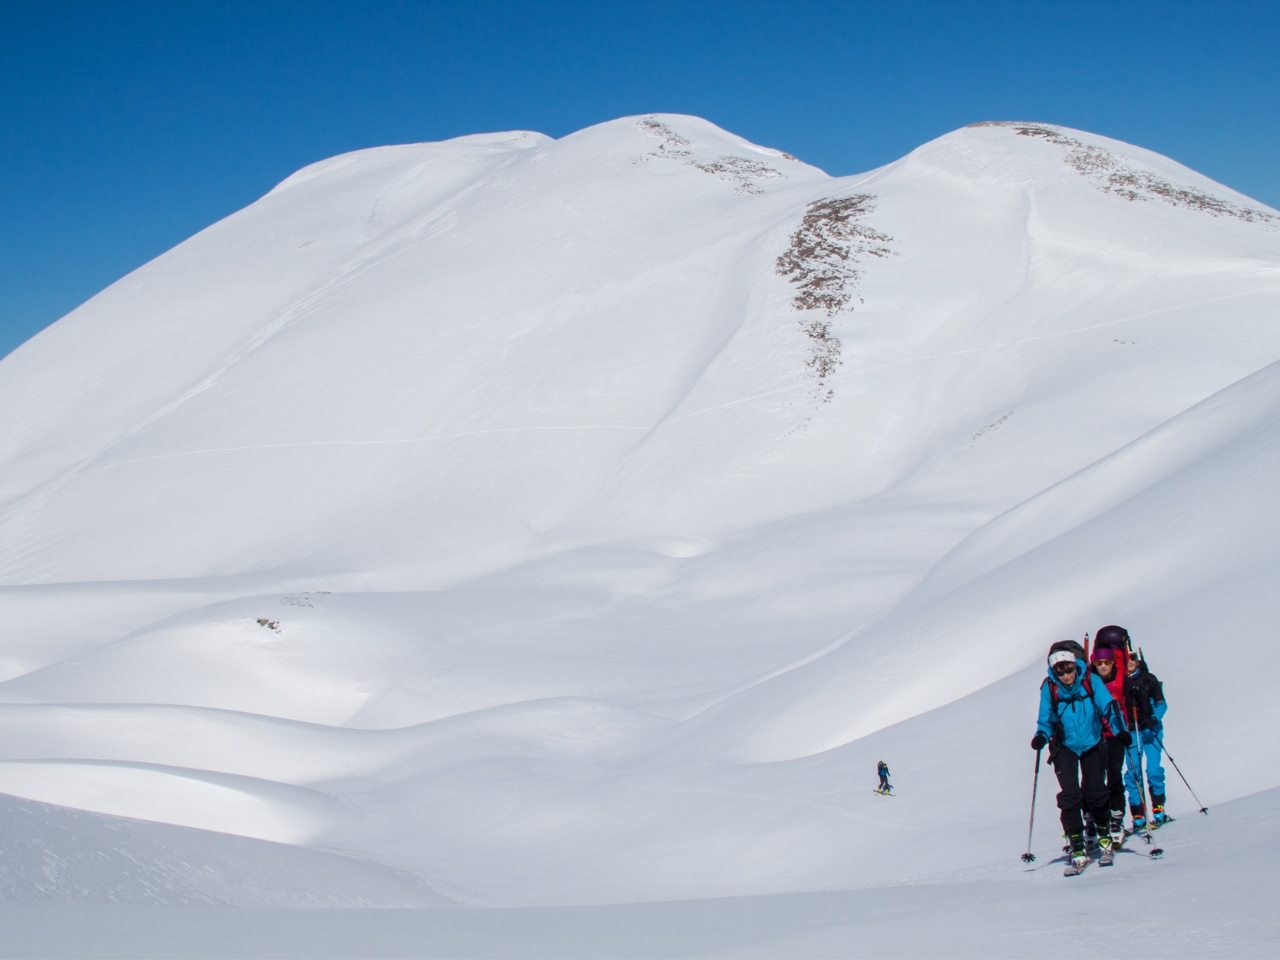 Mountaineering Ski In West Crete, ski winter crete, chania winter sports, white mountains ski, lefka ori ski, winter activities chania crete, crete travel, best ski tours crete